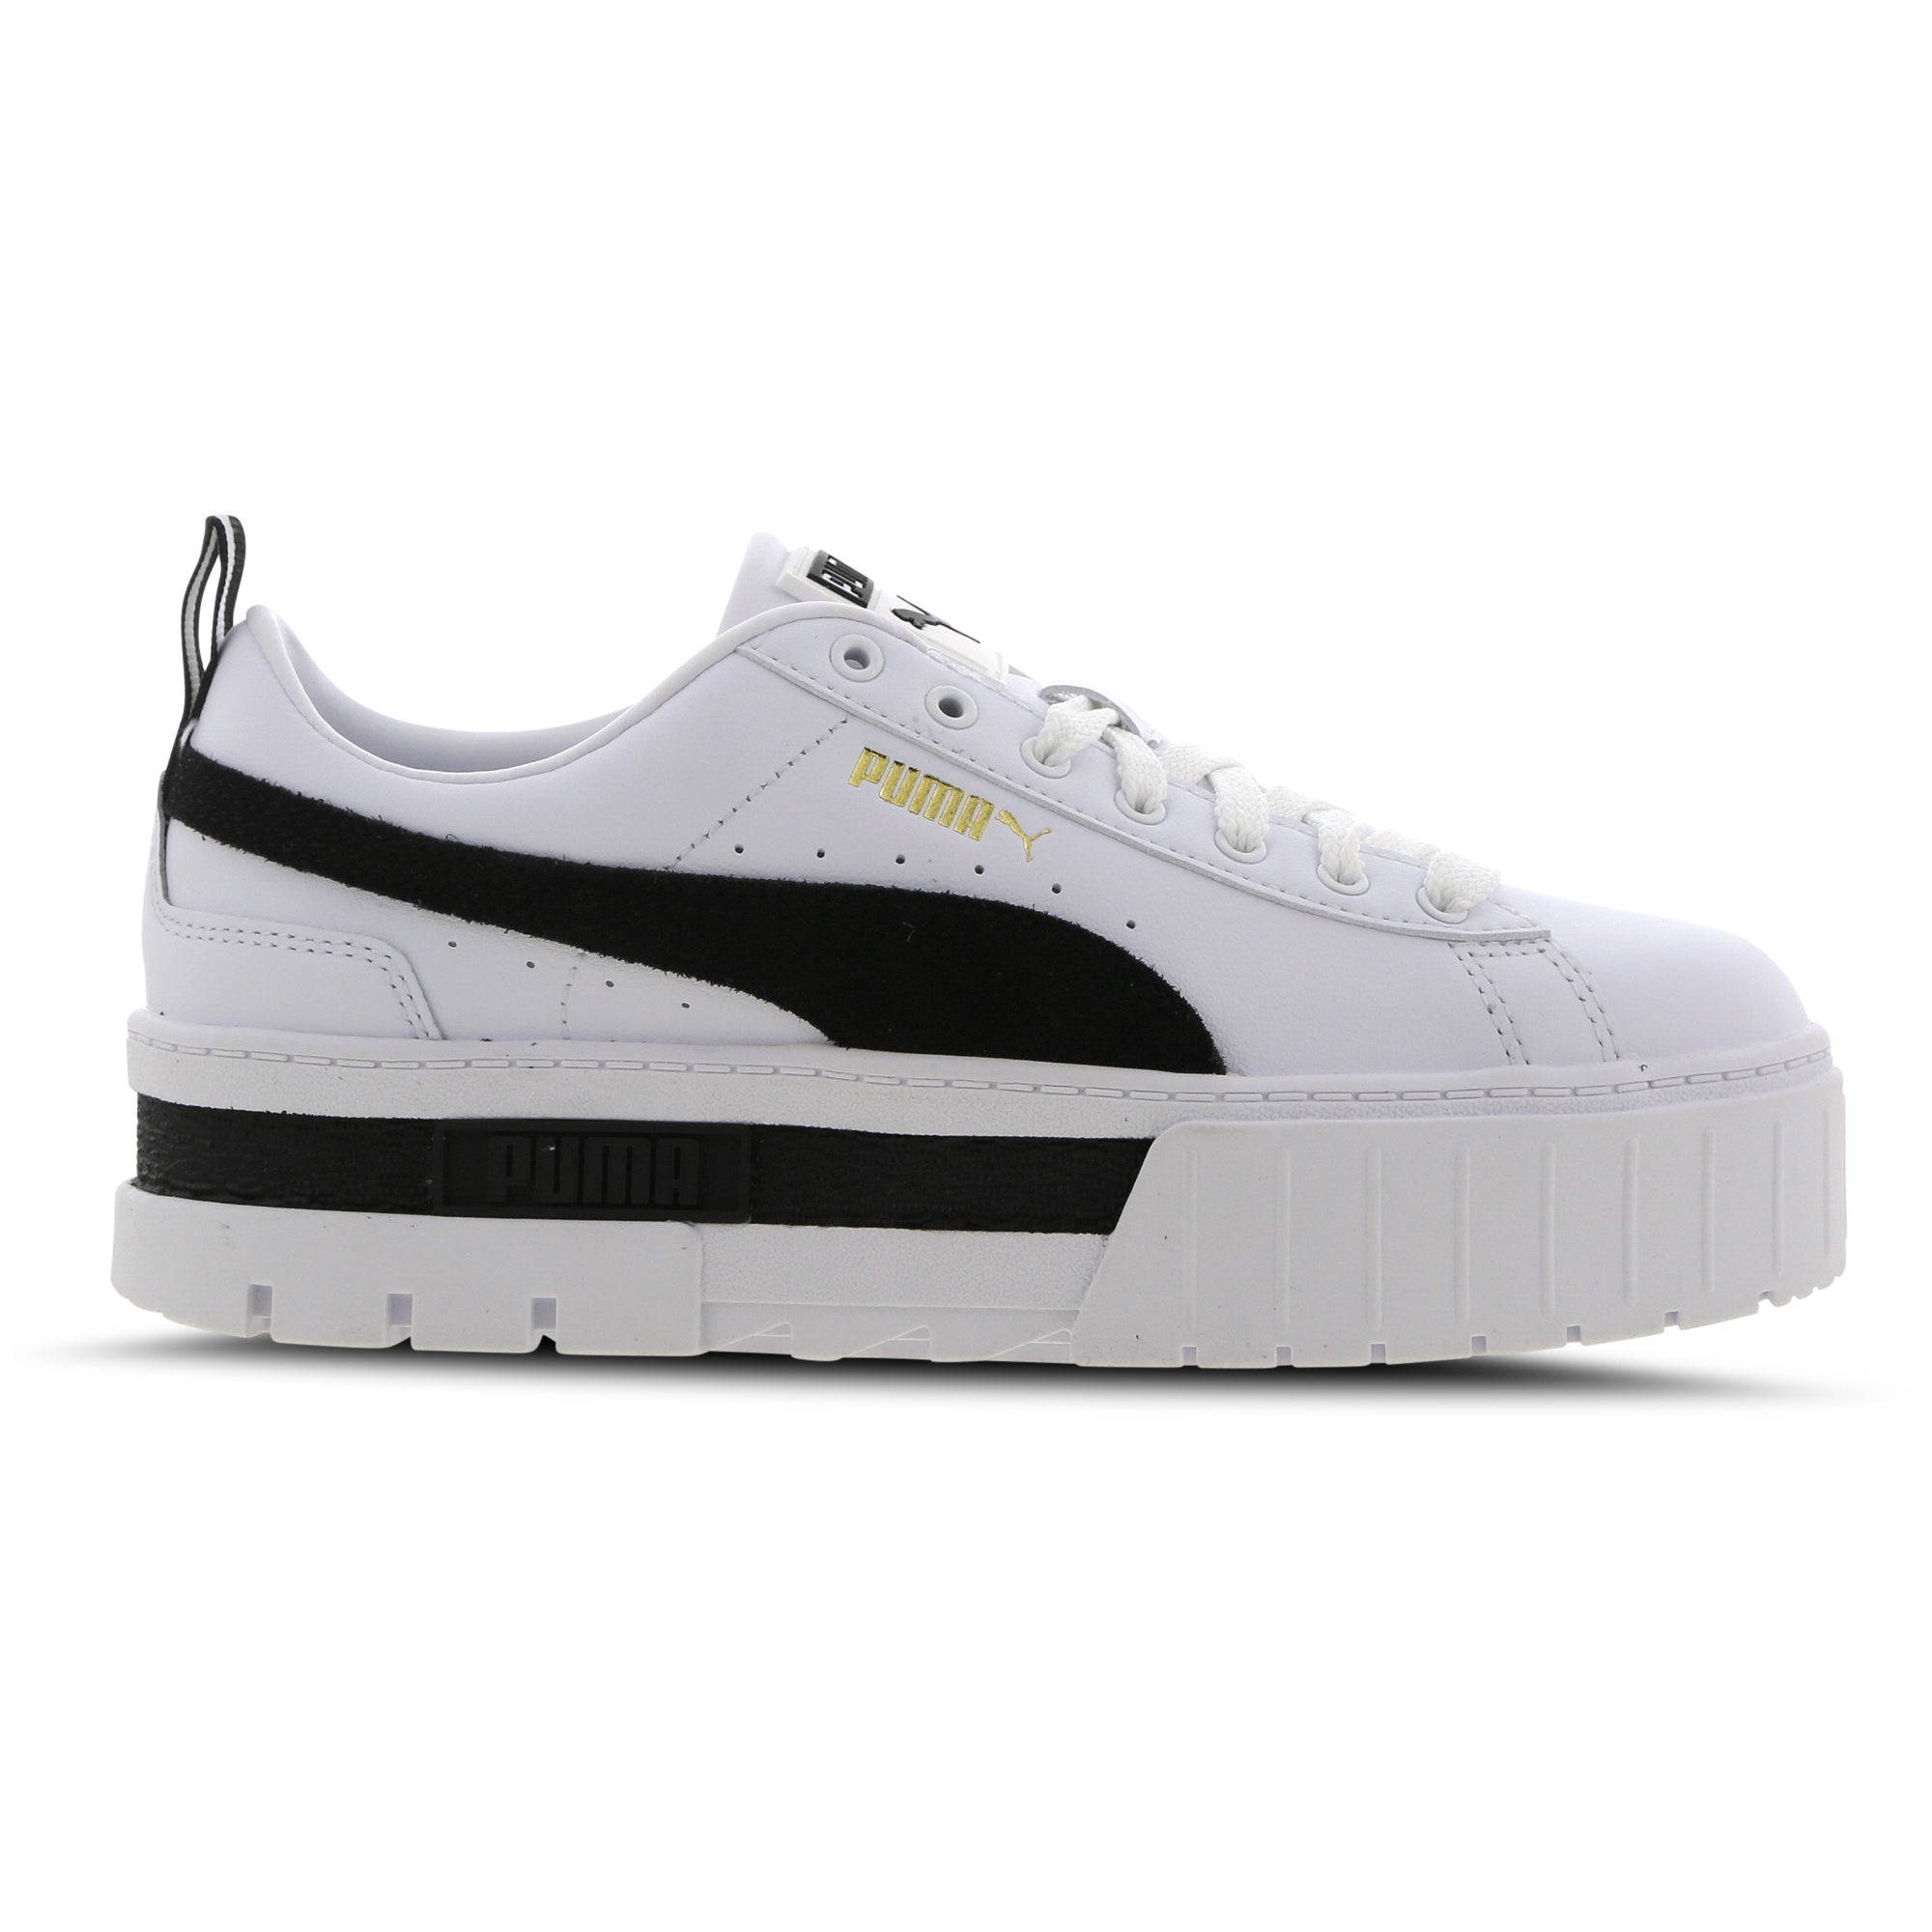 PUMA Mayze Platform Shoes